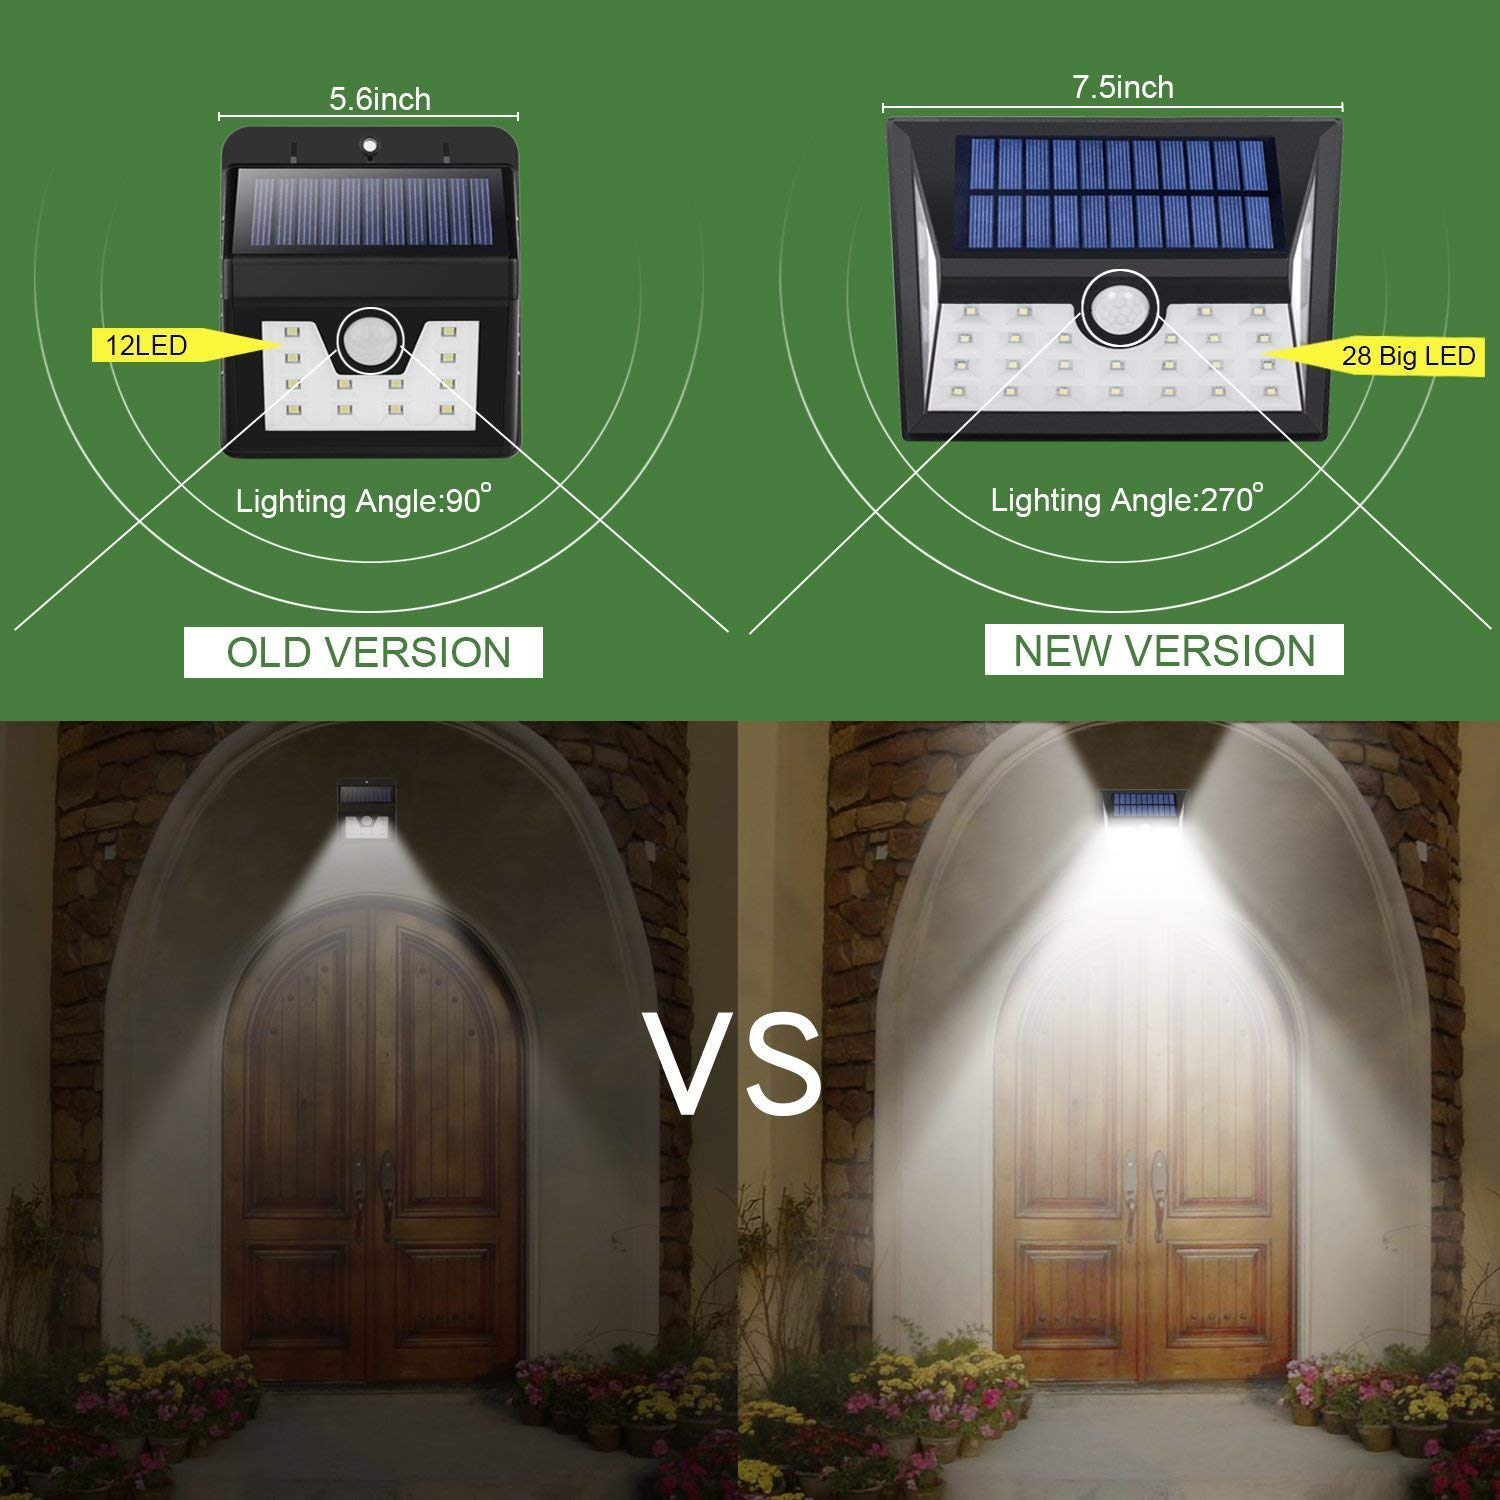 Outdoor Solar Powered Spotlight - Dolucky 24 LED 2 Mode Waterproof Solar Landscape Light with 360°Rotatable Dual Head for Garden Patio Pathway Driveway